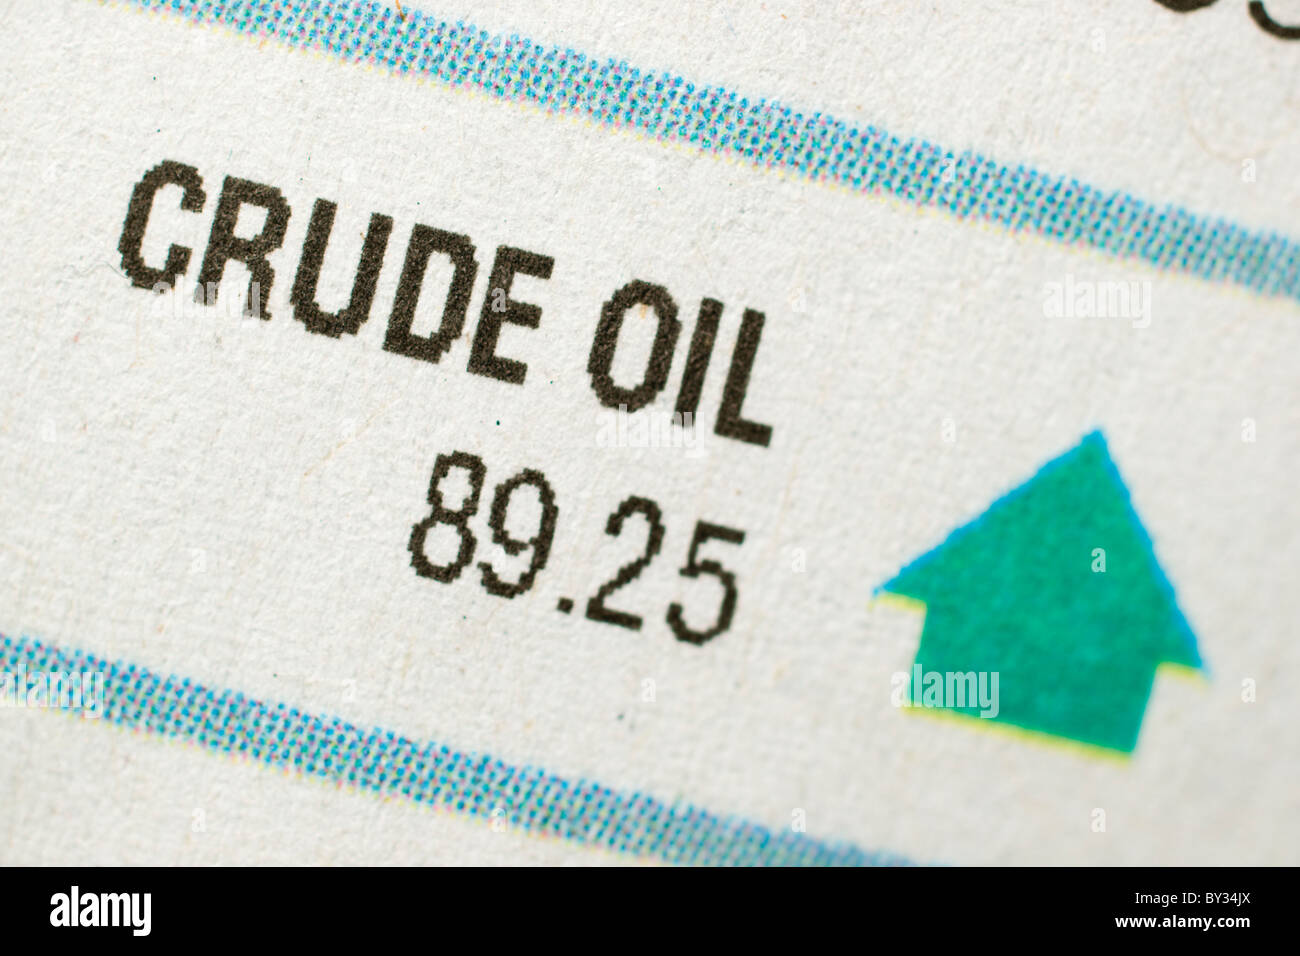 January 2011 crude oil stock prices up - Stock Image